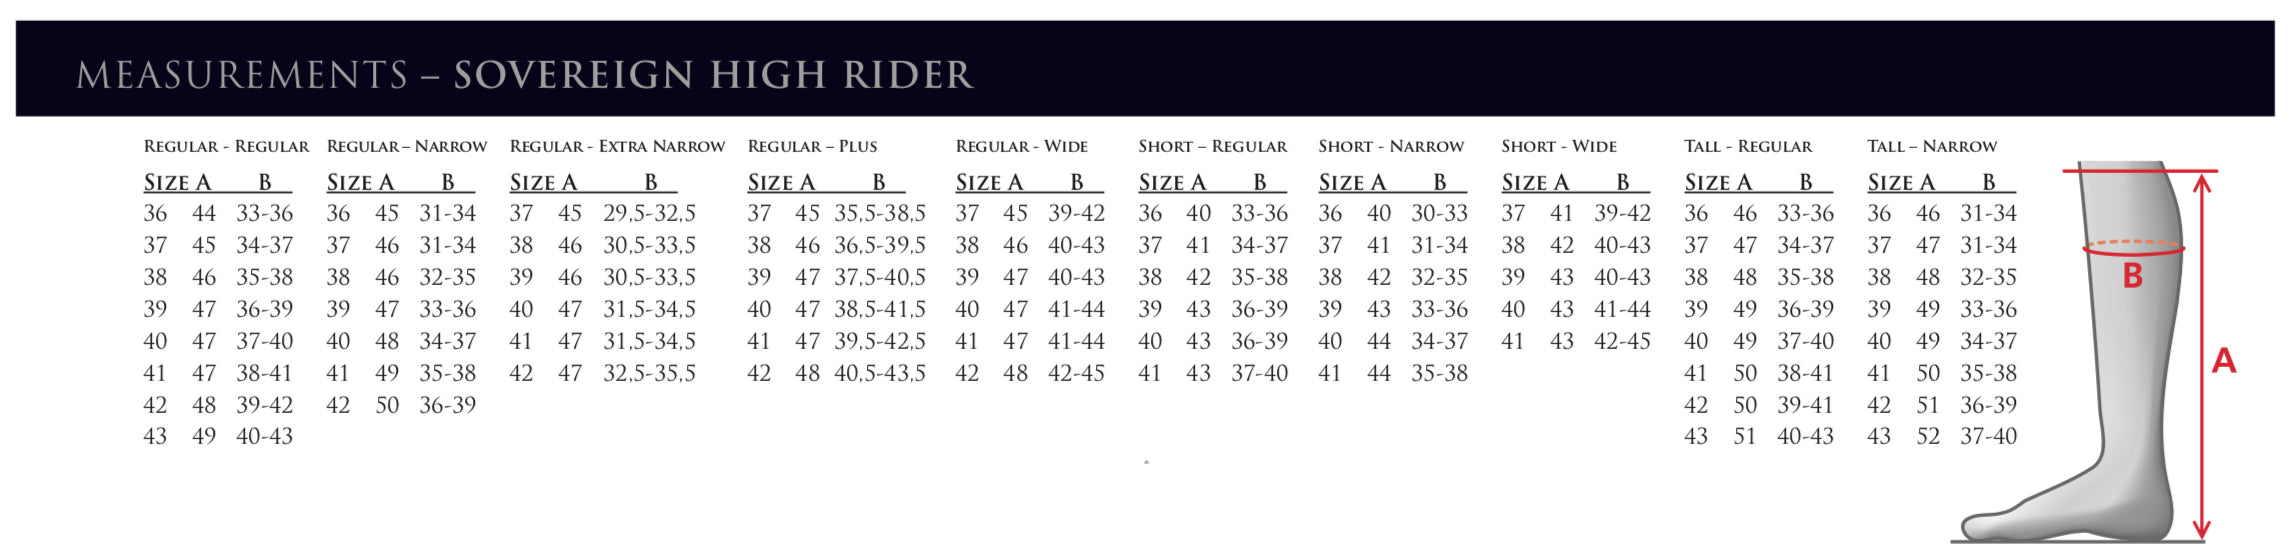 Mountain Horse Sovereign High Rider Tall Boot Size Chart